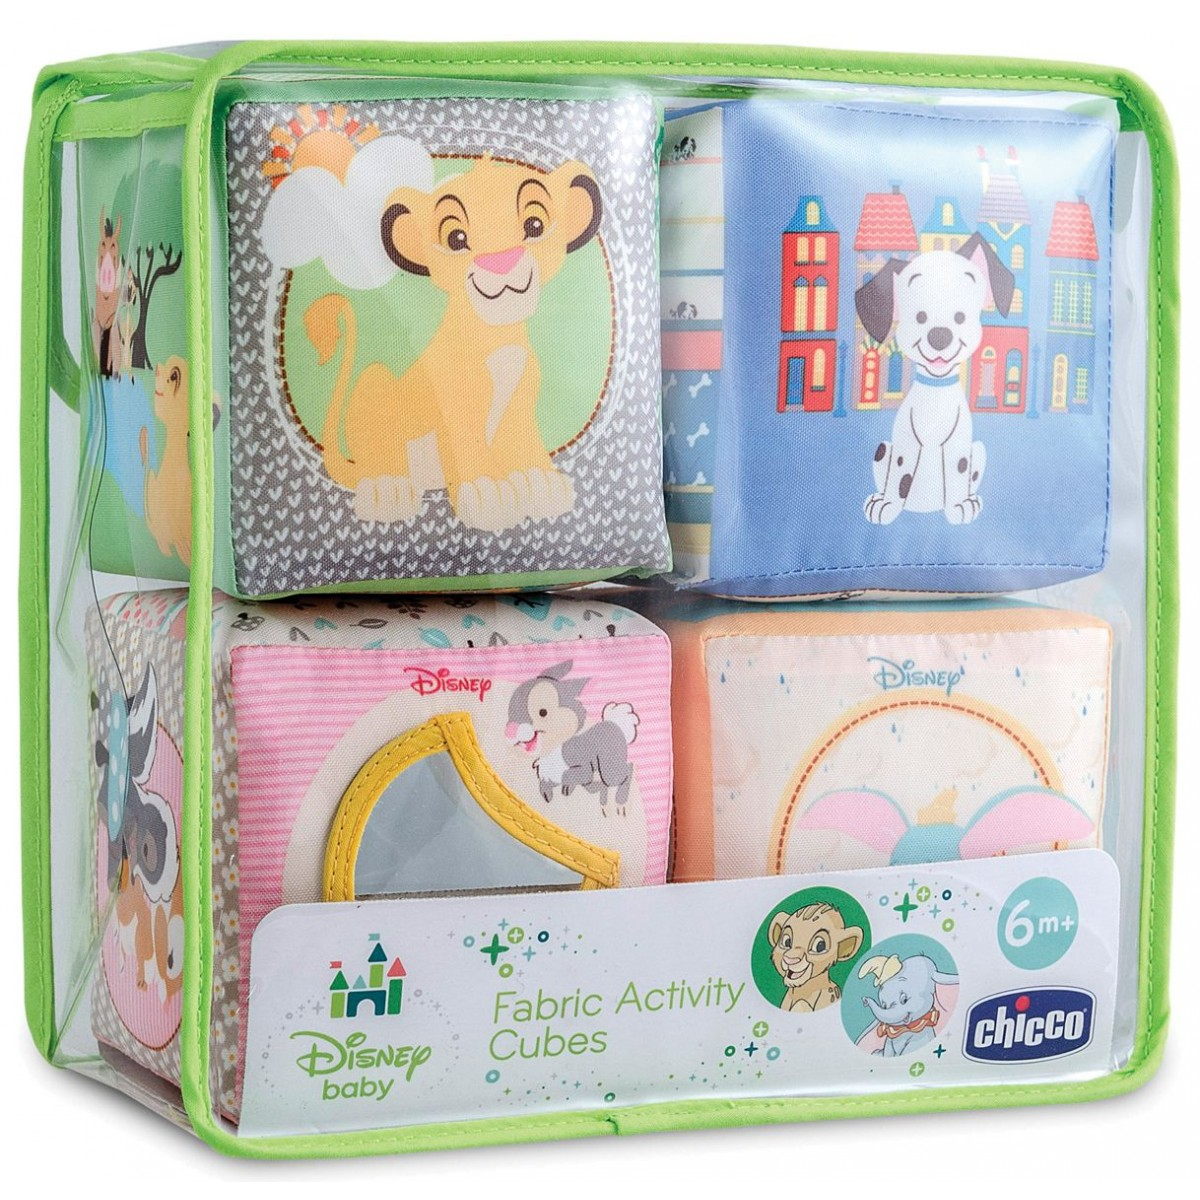 chicco-fabric-activity-cubes